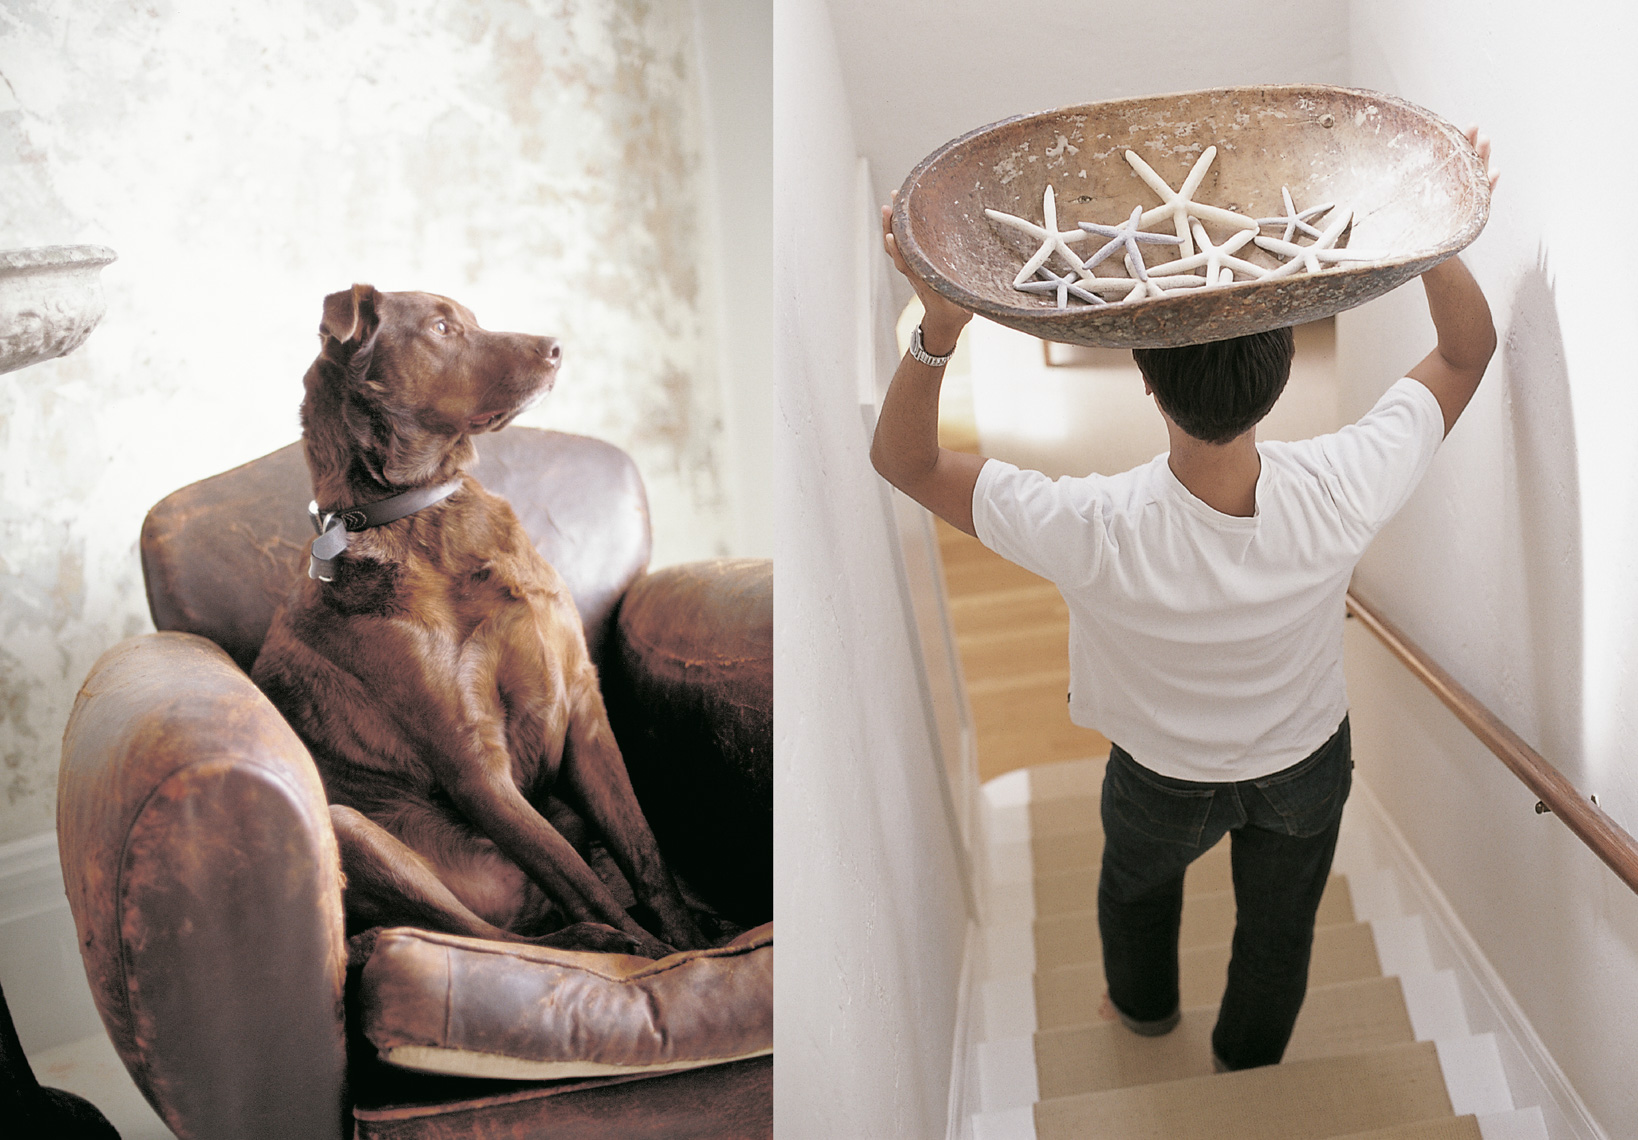 brown Irish Setter dog sitting on brown worn-leather armchair next to man carrying bowl of white starfish down the stairs